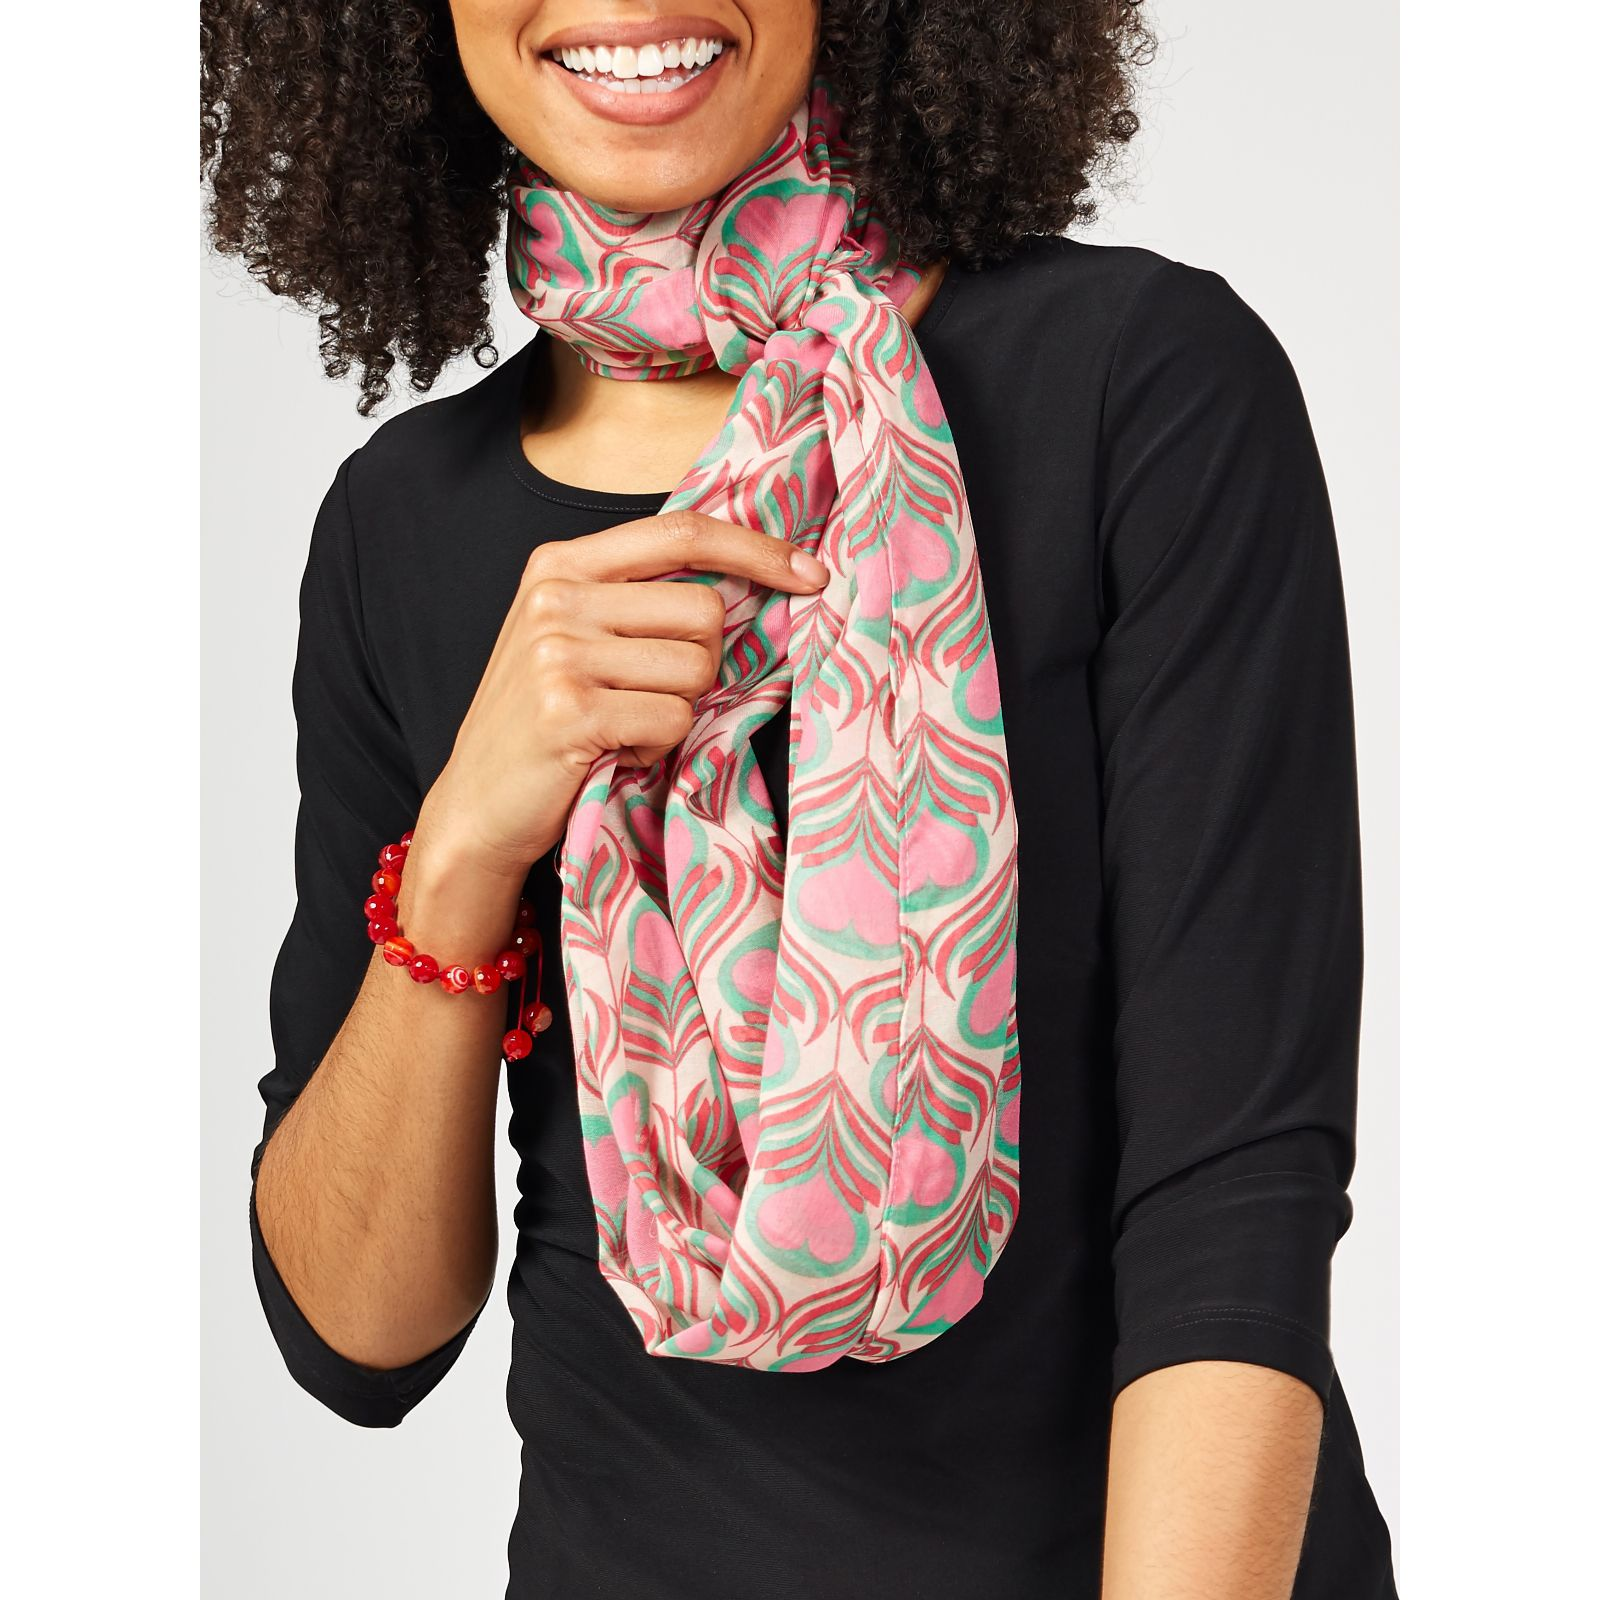 69c3049ef Lola Rose Infinity Scarf with Pouch - QVC UK